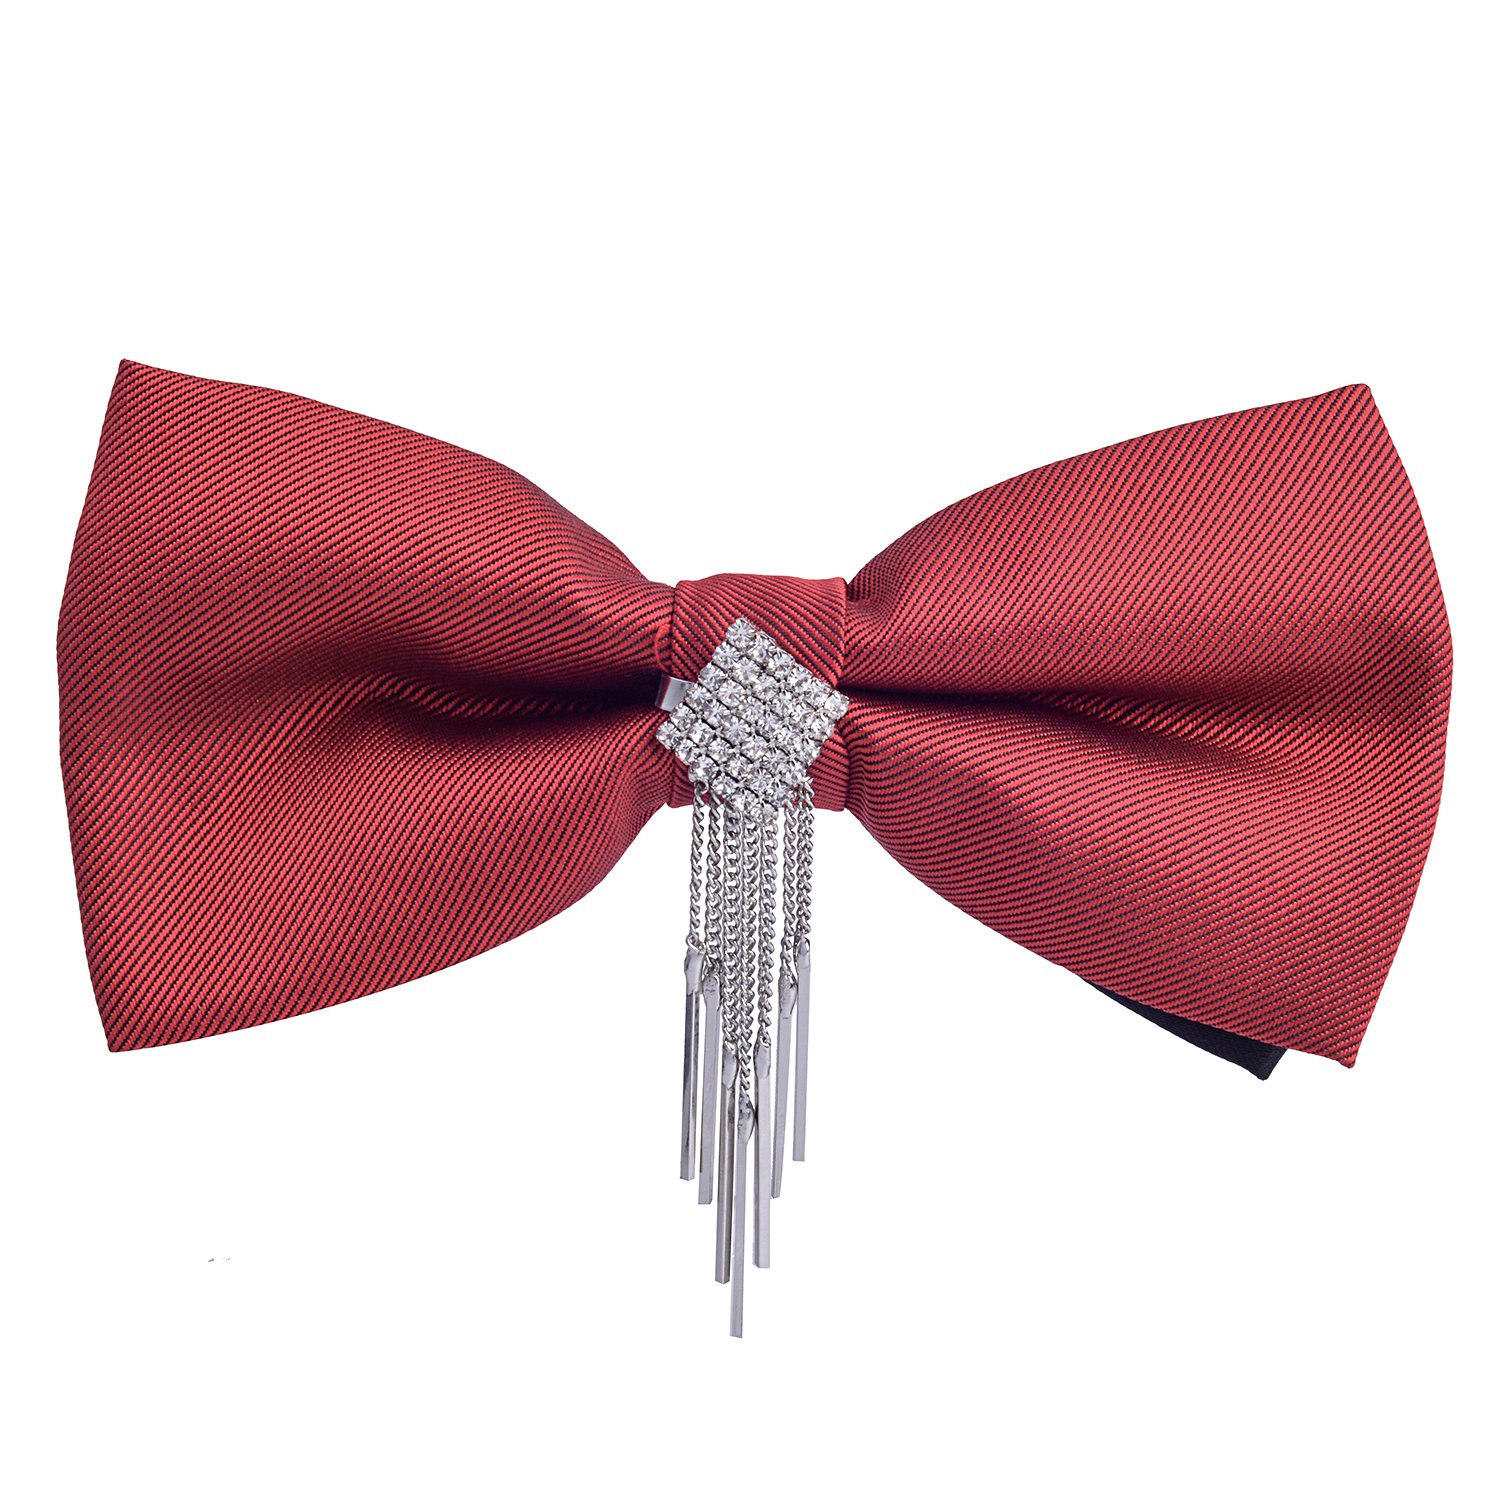 Sunvan Mens Bow Tie Maroon Solid with silver crystal Stone Studded And Strings Attached Pre-Tied Bow Tie with Adjustable Length